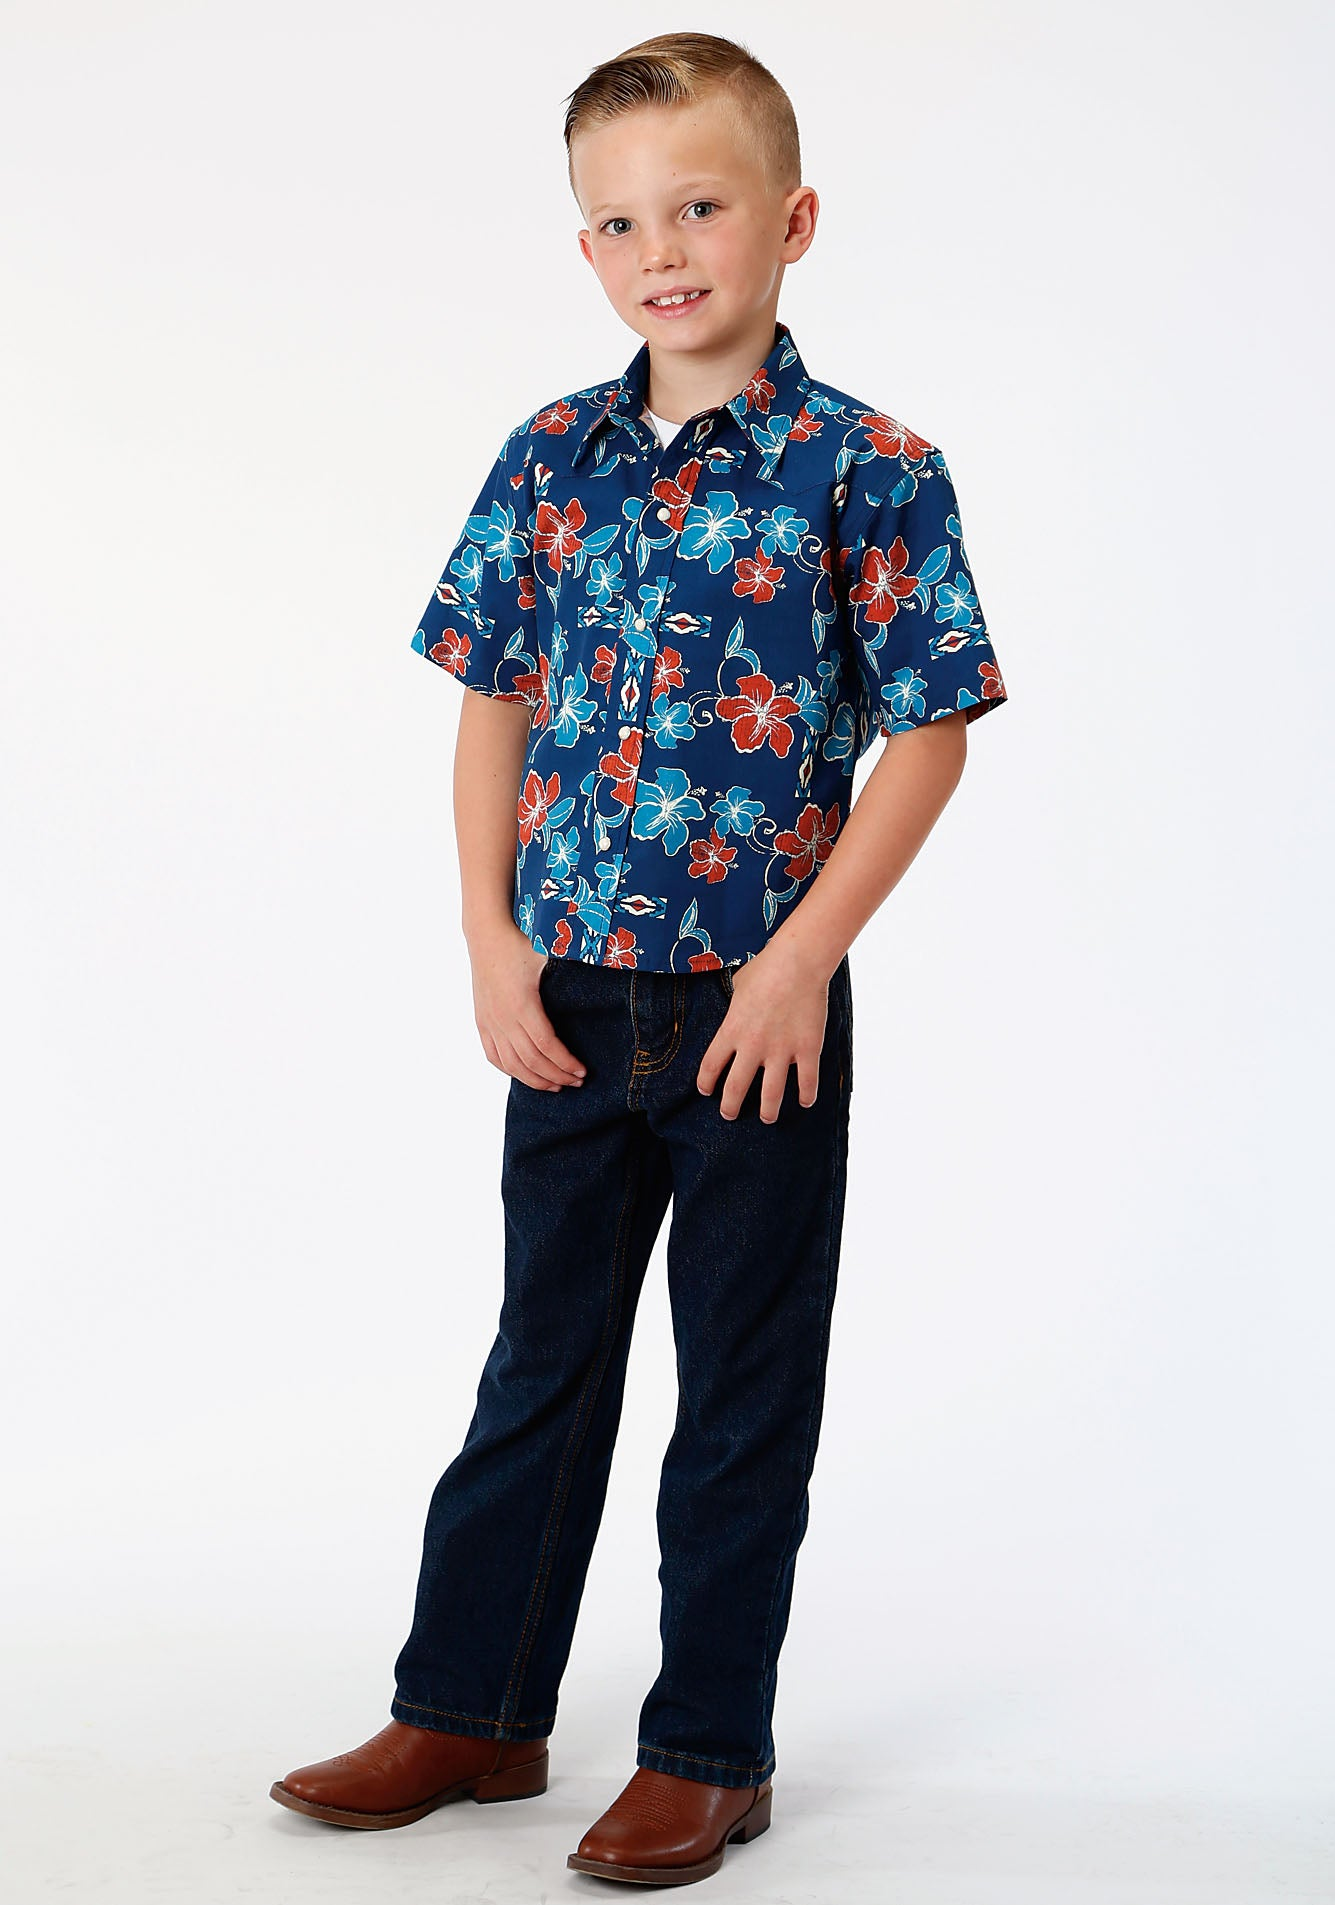 ROPER BOYS BLUE 00081 NEW TROPTICAL PRINT WEST MADE COLLECTION SHORT SLEEVE